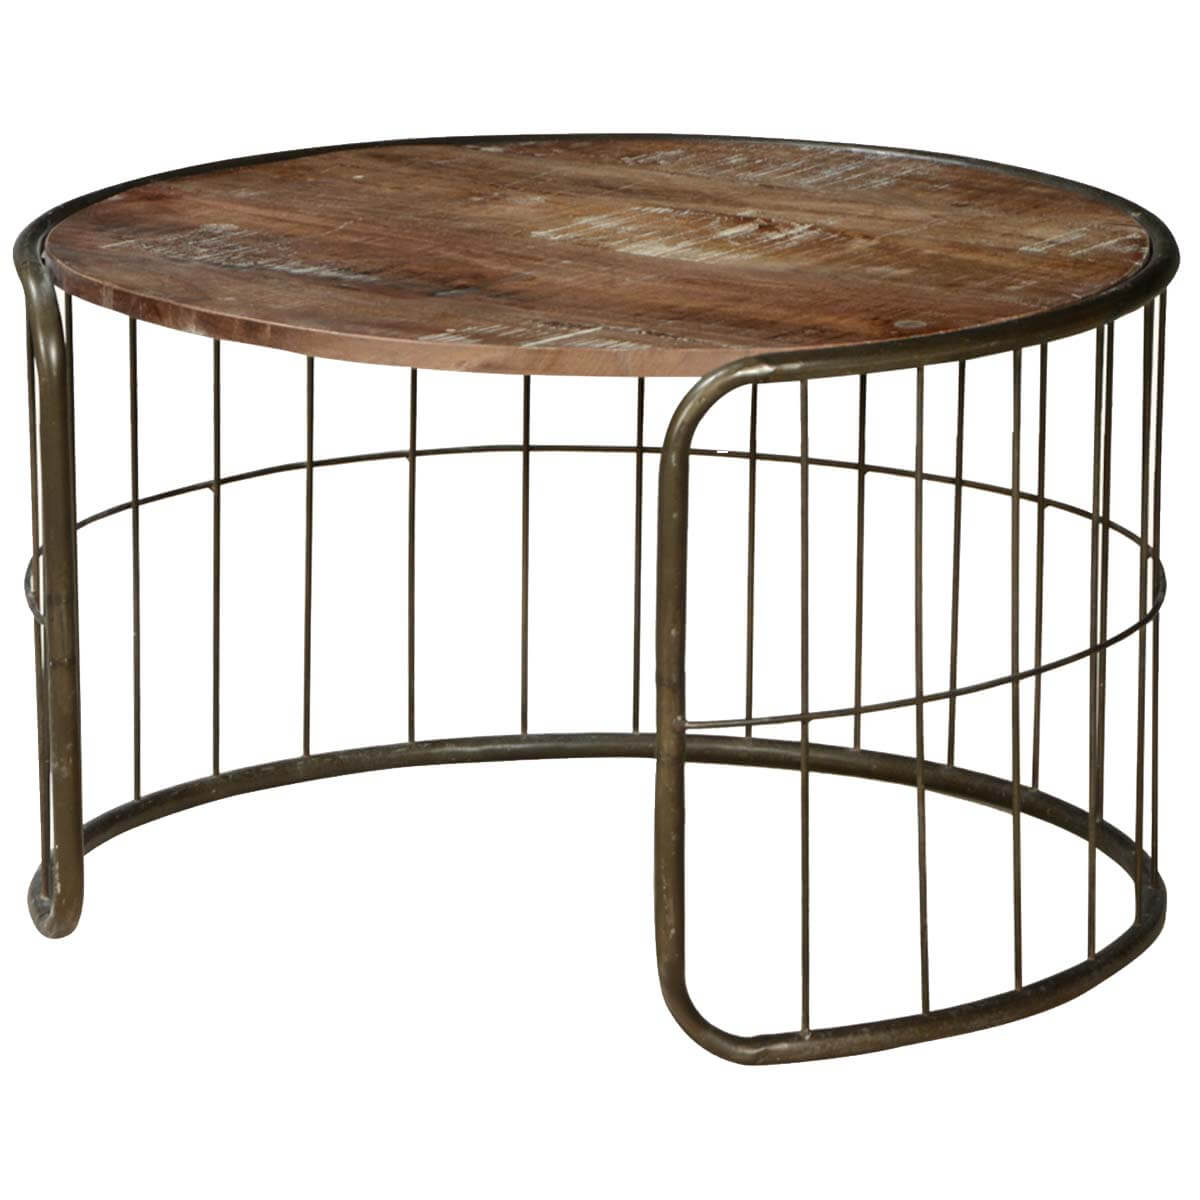 On the fence mango wood iron rustic 30 round coffee table Rustic iron coffee table